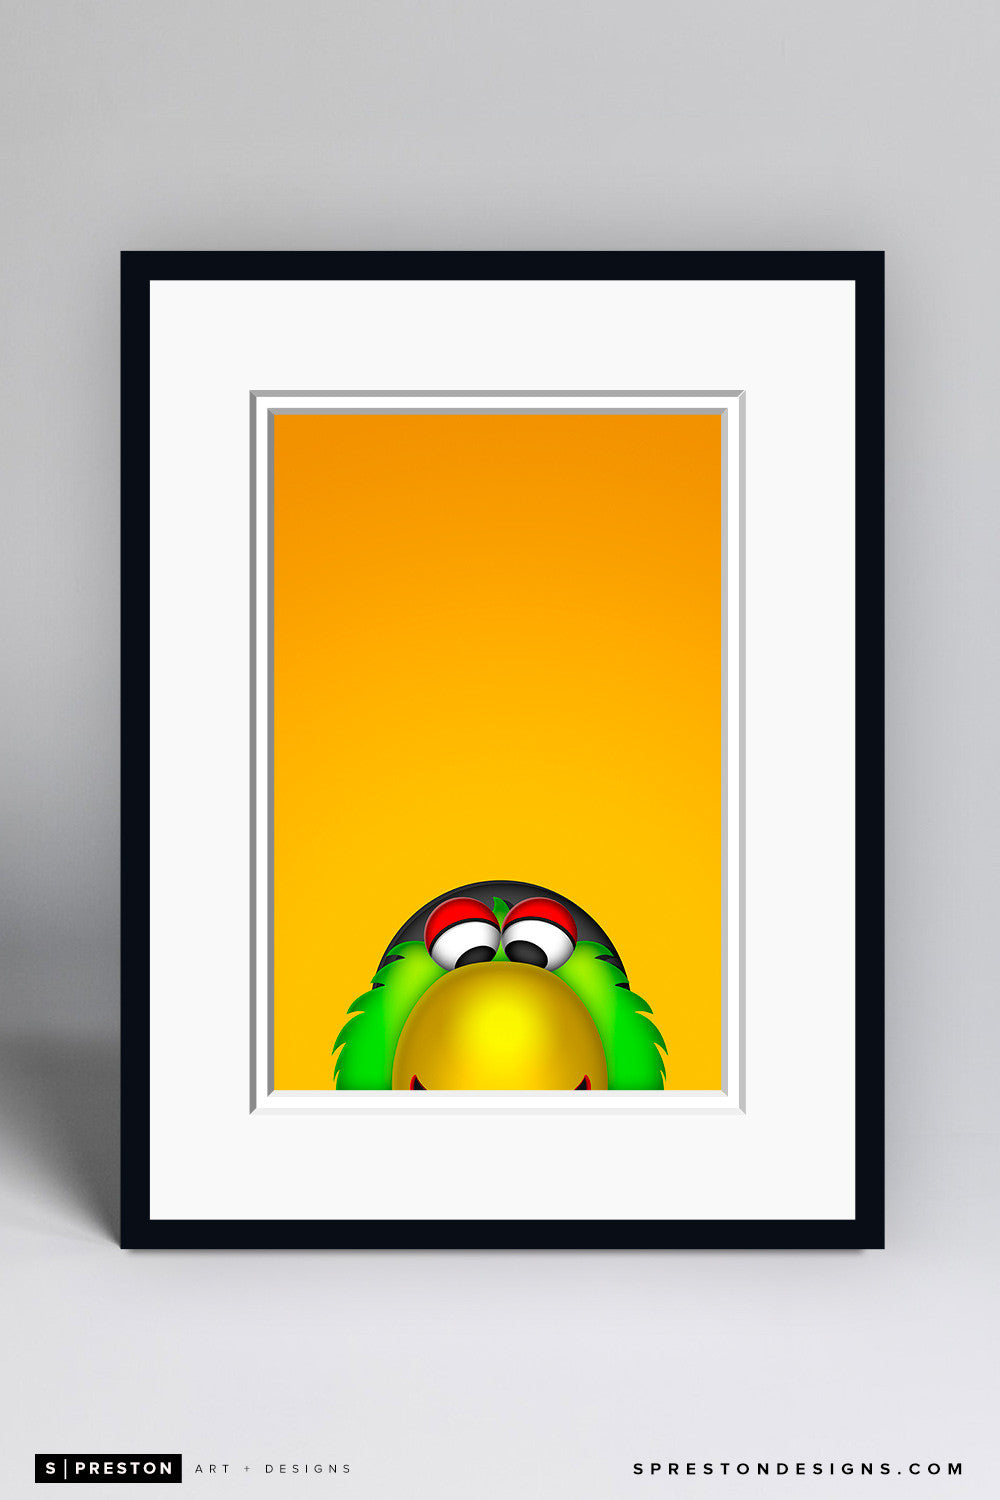 Minimalist Pirate Parrot - Pittsburgh Pirates - S. Preston